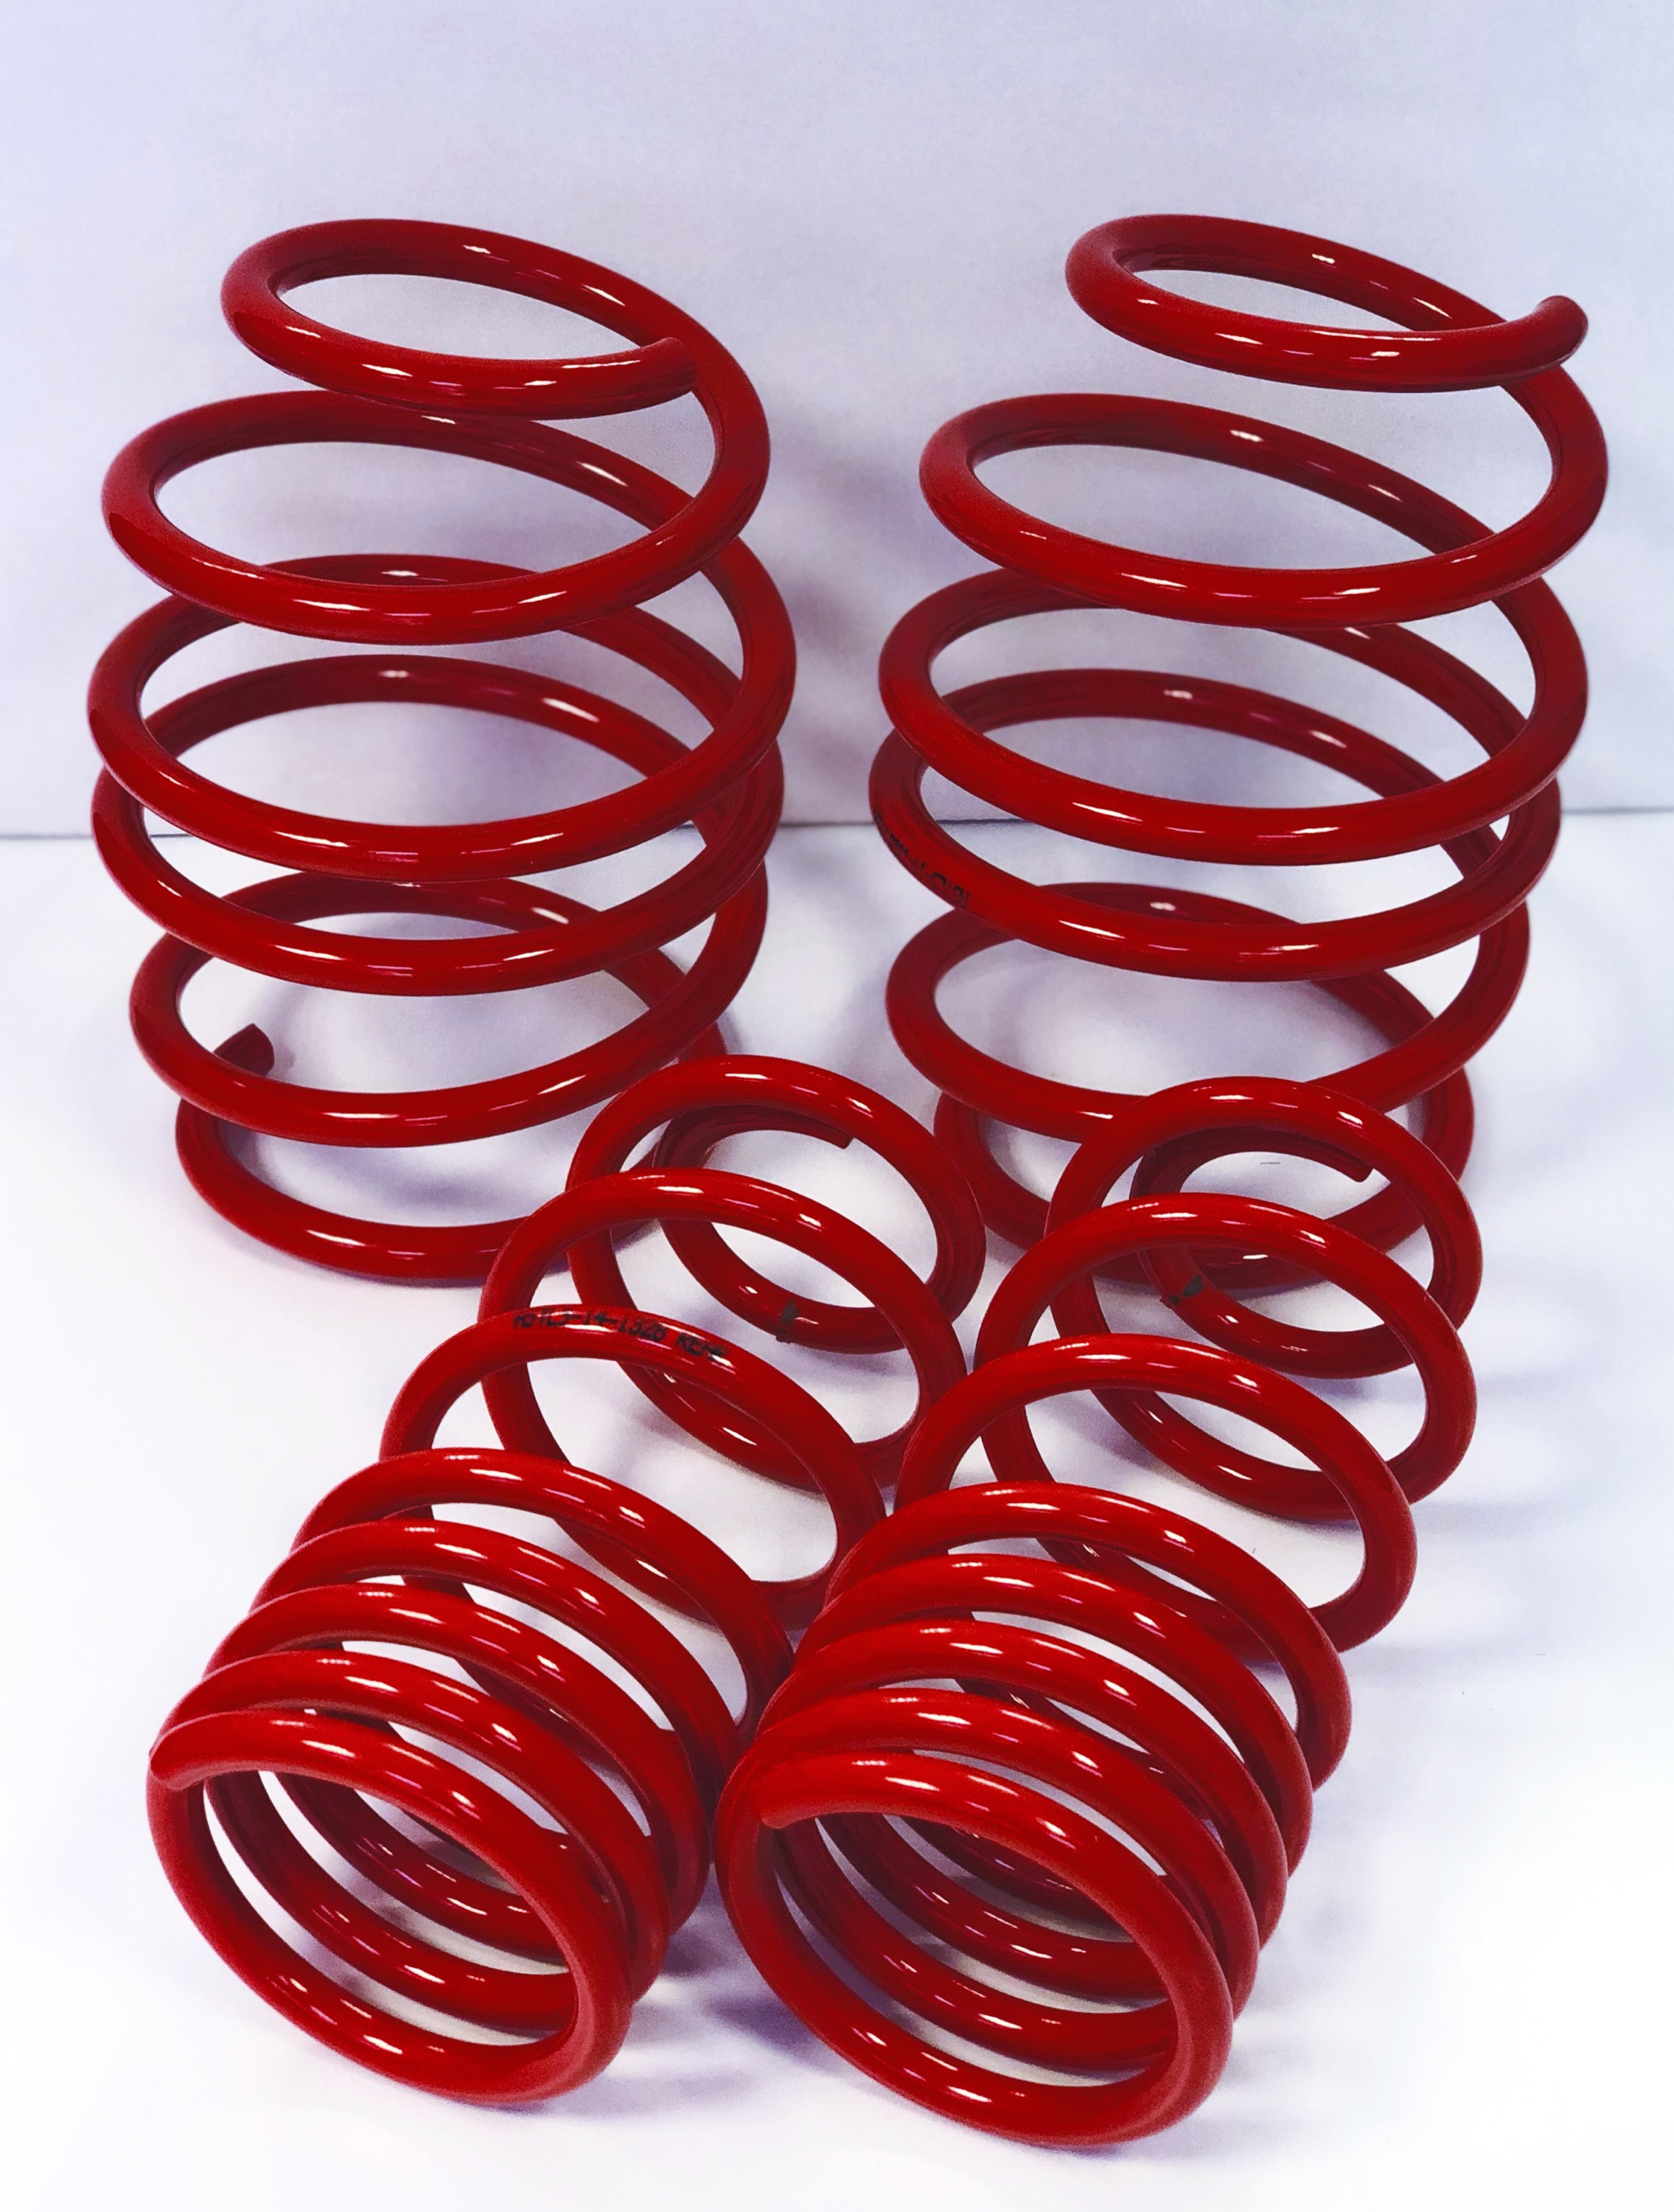 Renault LAGUNA AST Suspension Lowering Springs 35/25